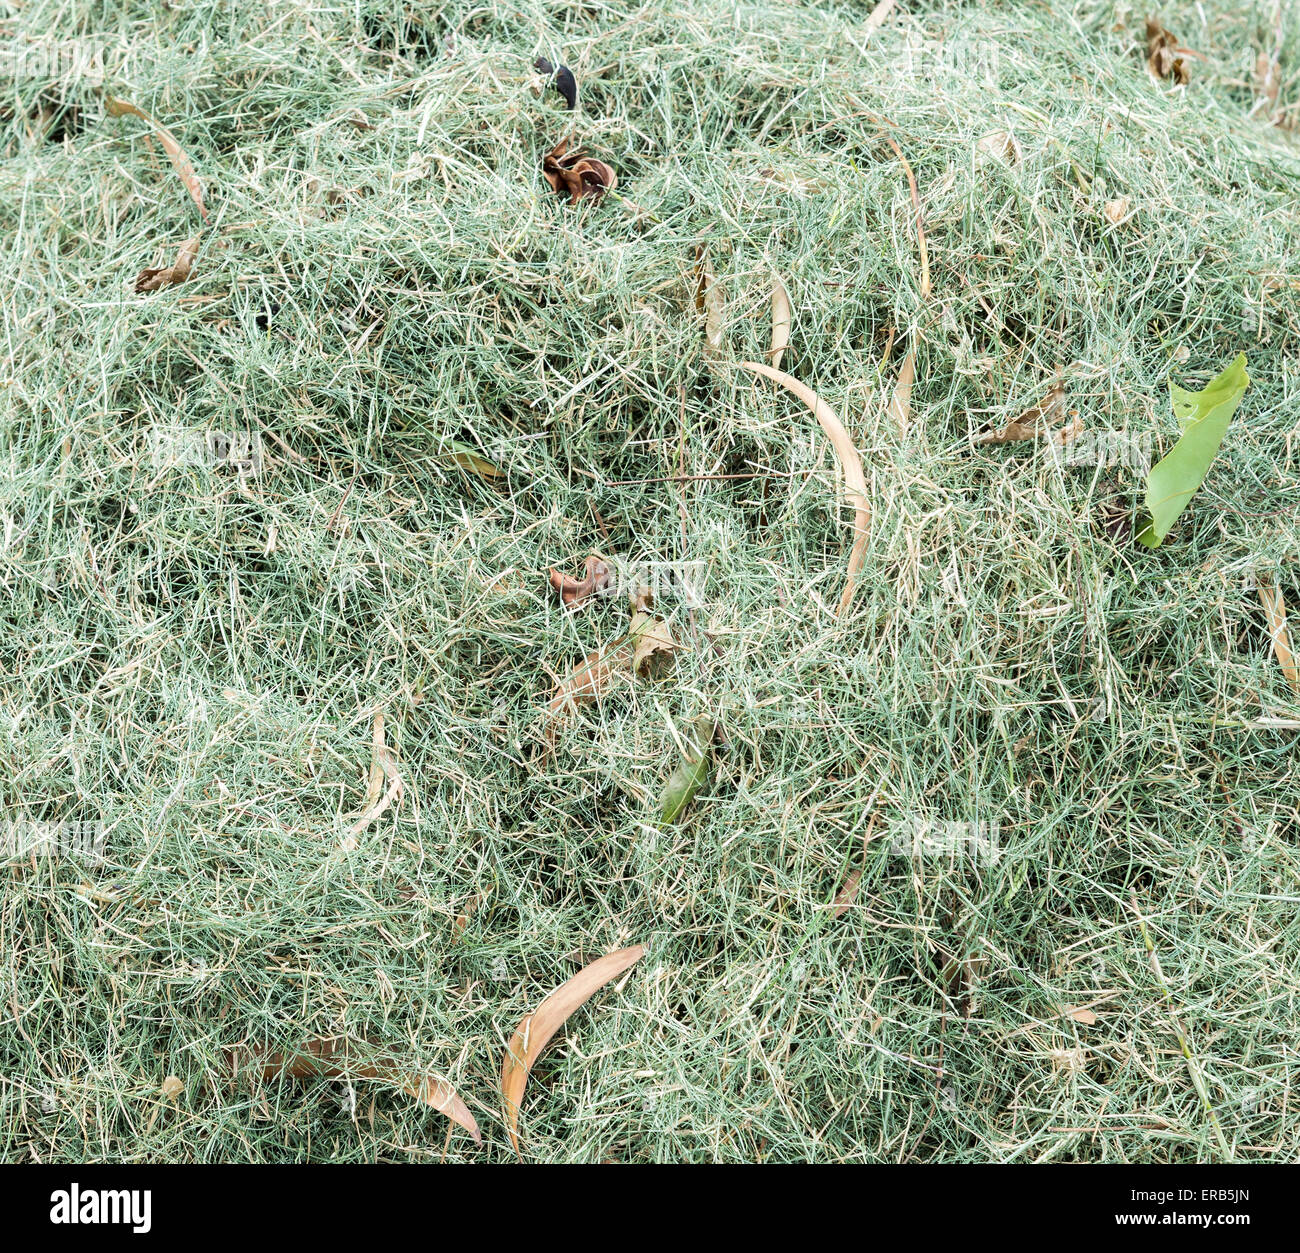 Grass clippings from the meadow of urban park. - Stock Image